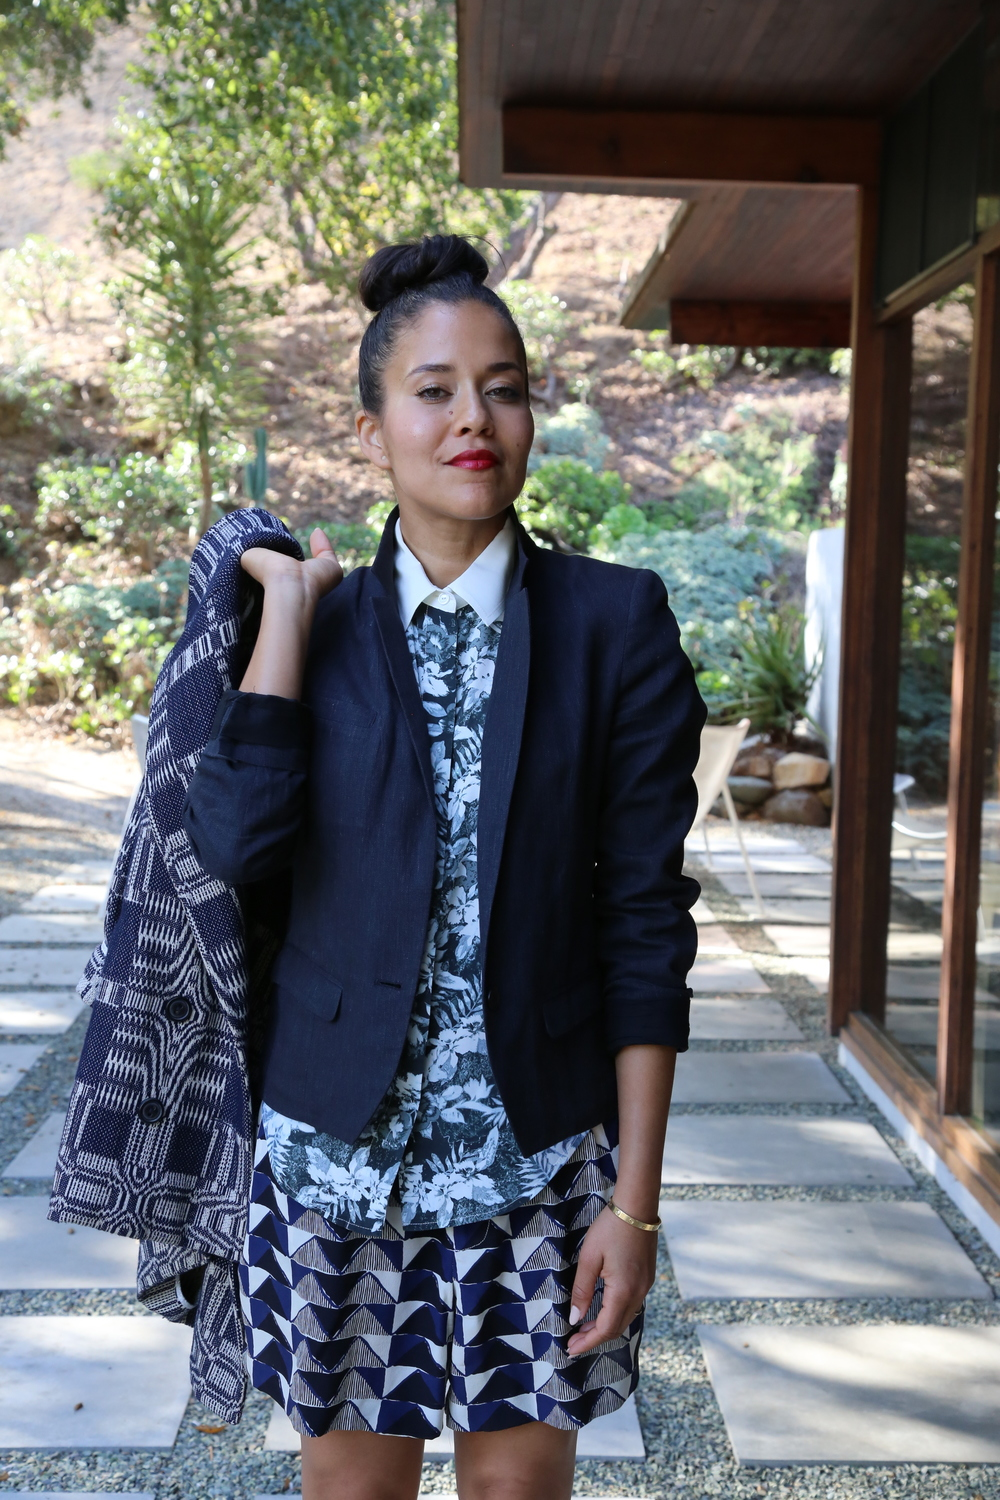 isabel-marant-print-blue-alexander-wang-top-blazer-los-angeles.jpg